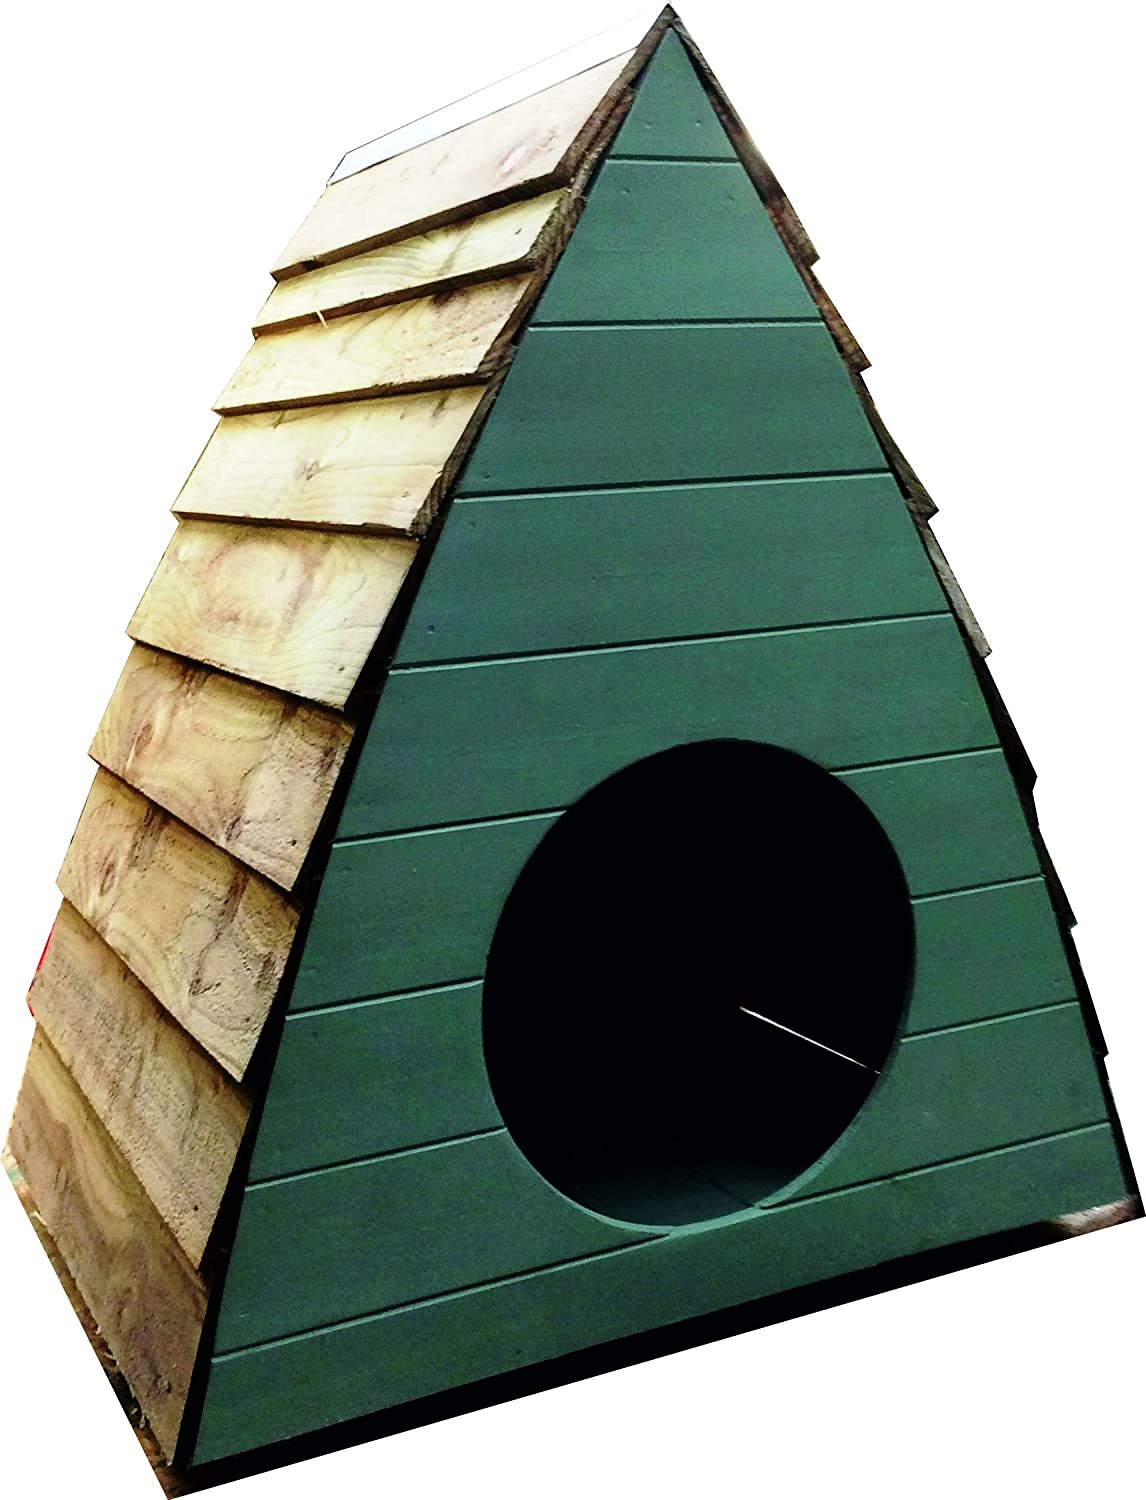 Hand Crafted Gothic Arch Shaped Kennel